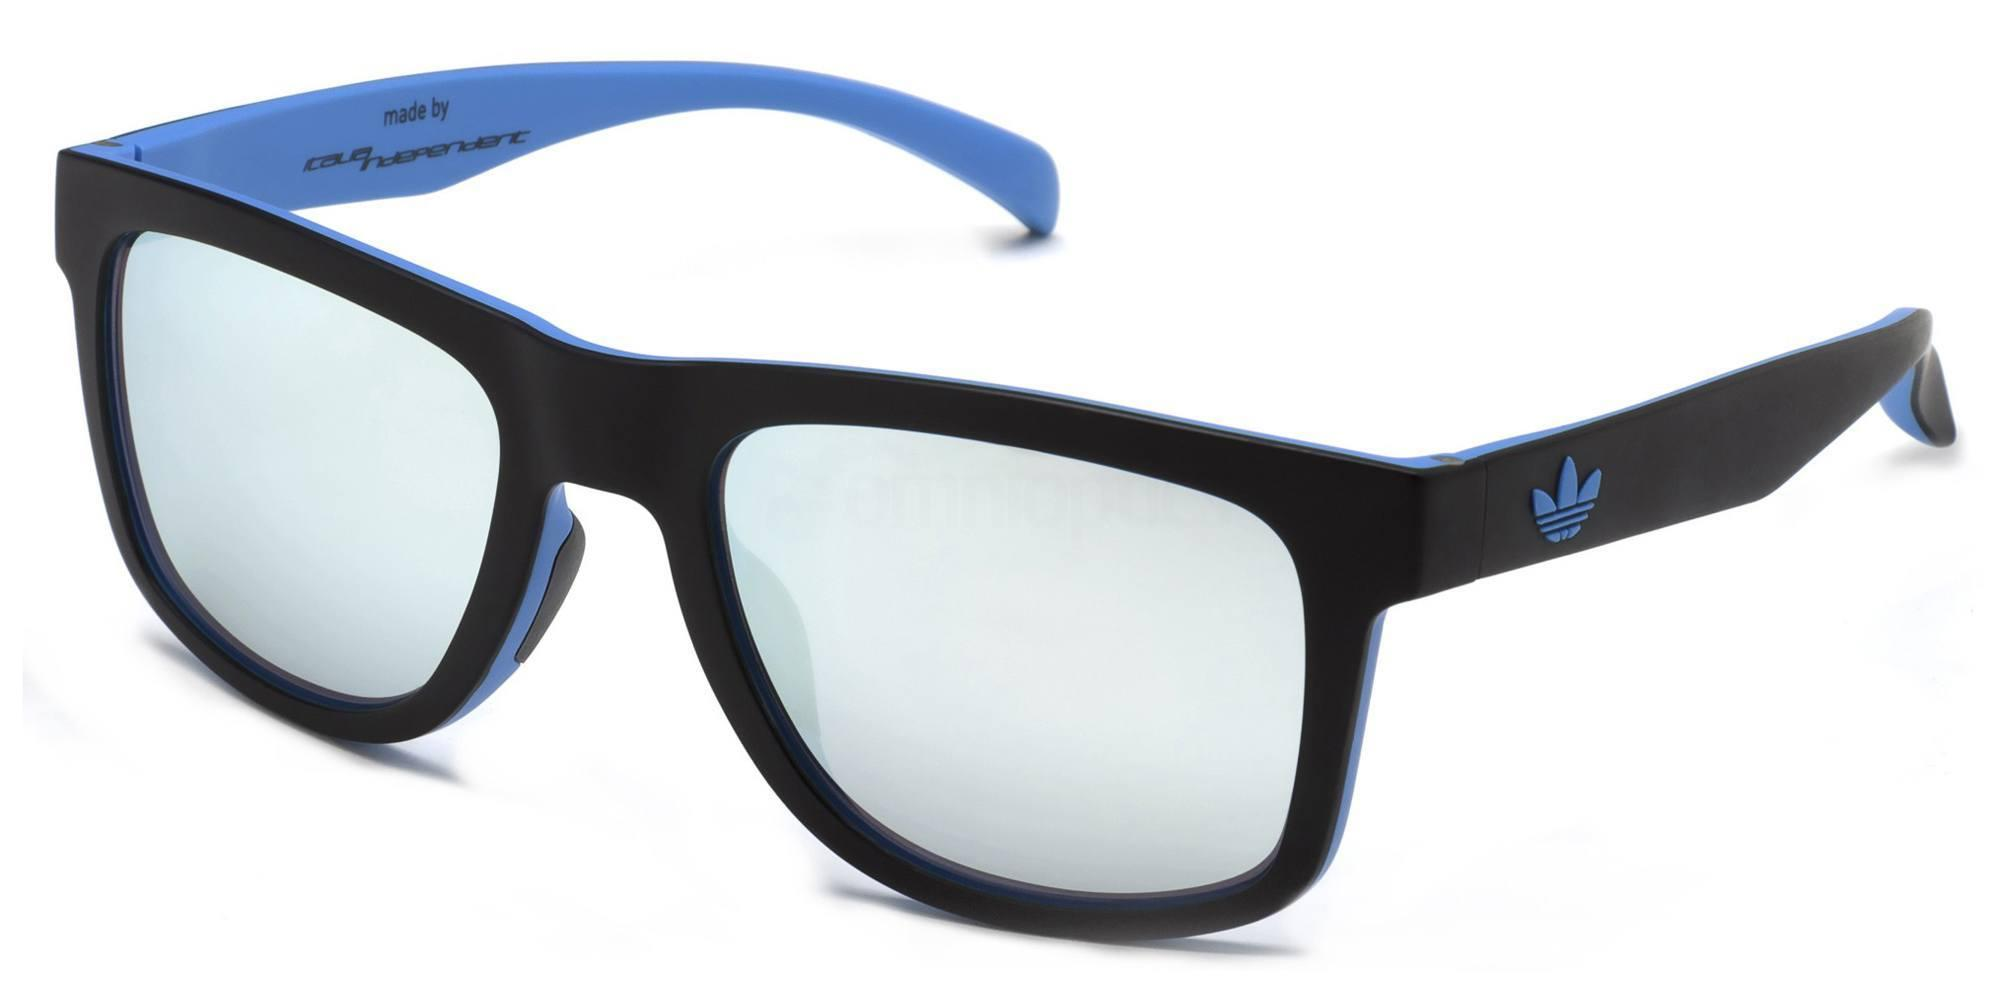 009.027 AOR000 Sunglasses, Adidas Originals